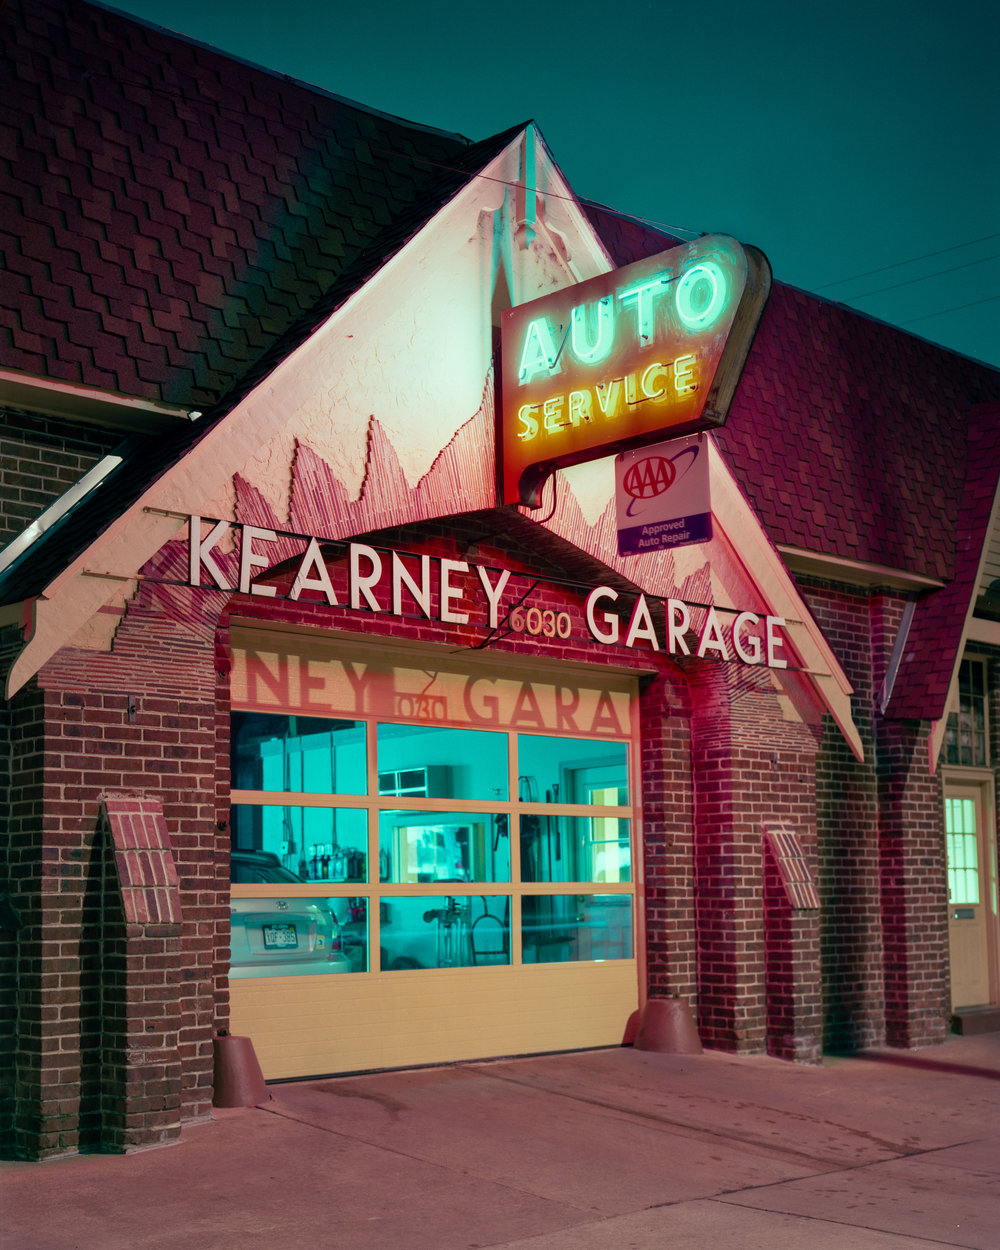 Kearny Garage